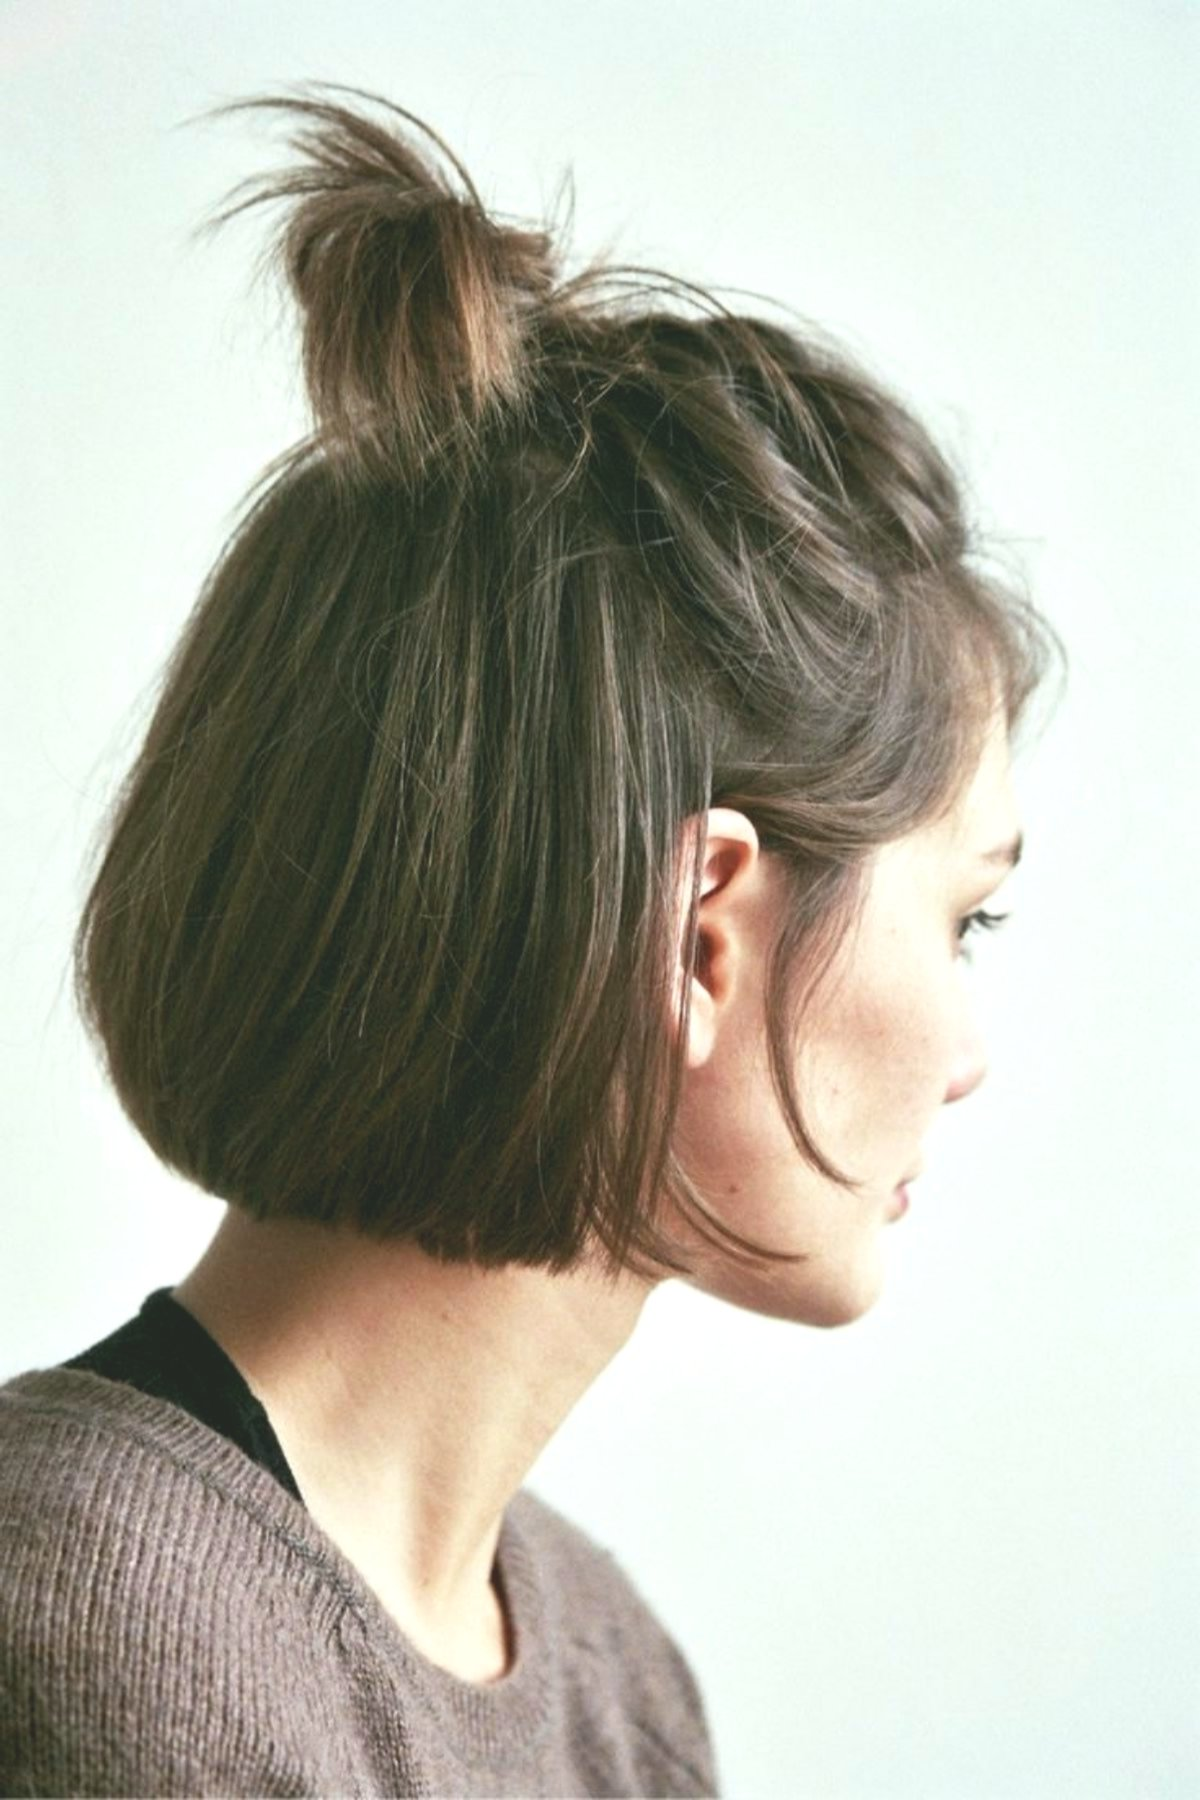 fantastic hairstyles for girls online-Stylish Hairstyles For Girls Gallery